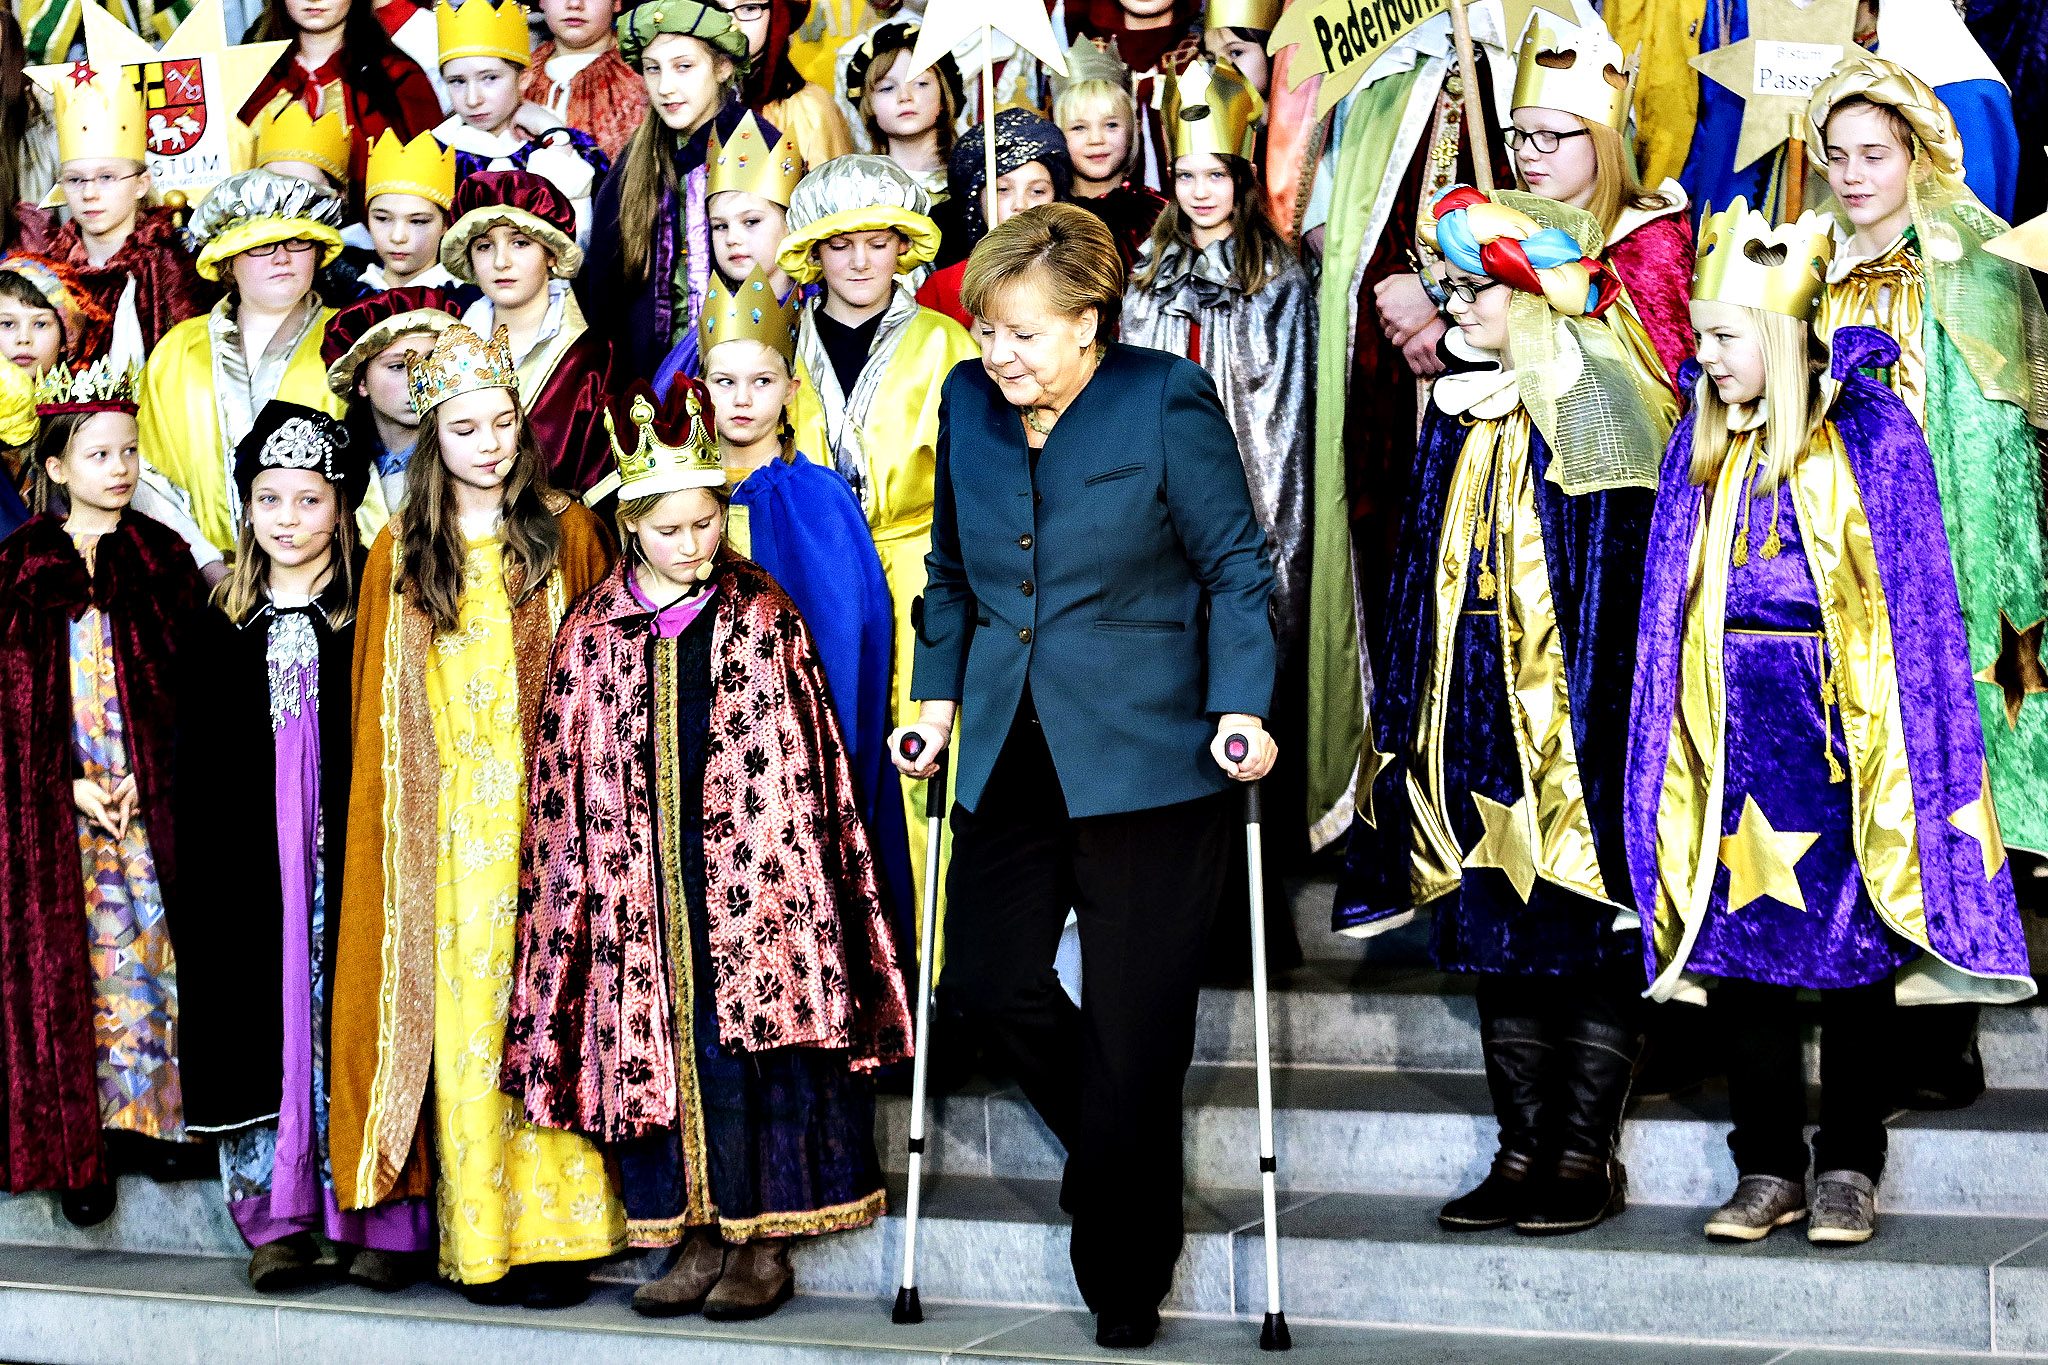 German Chancellor Angela Merkel  uses  crutches as she attends the annual reception for Carolers at the chancellery in Berlin,  Tuesday Jan. 7, 2014. German Chancellor Angela Merkel  suffered a  pelvis  injury during ski holidays  in the Swiss Alps and will have to cut back on her work schedule for the next three weeks.